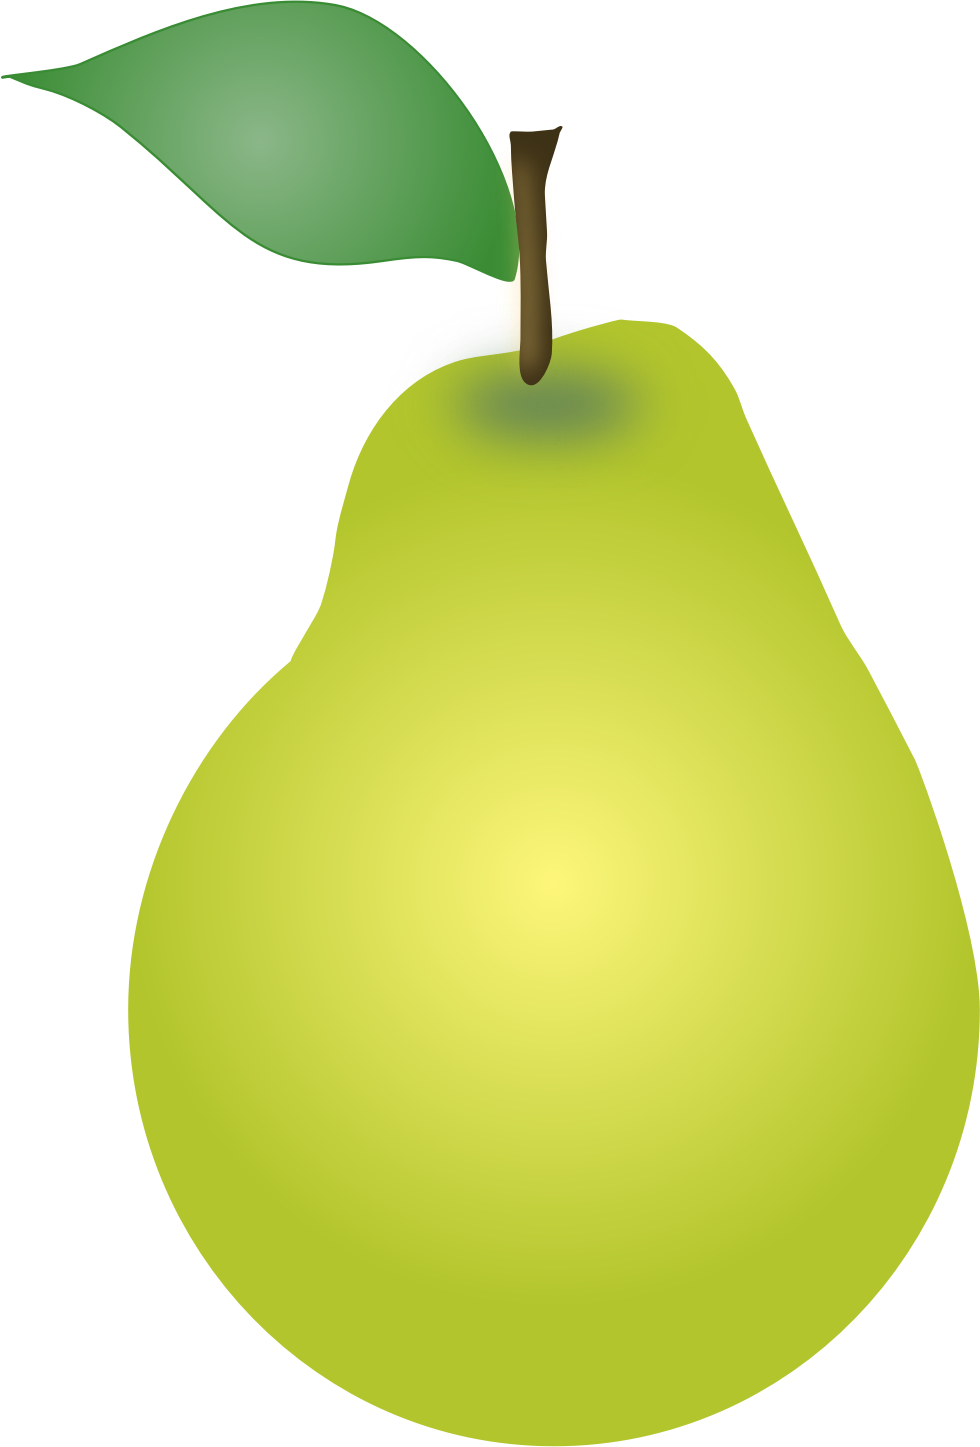 clipart pear svg pear clipart rh openclipart org spear clipart pear clipart images